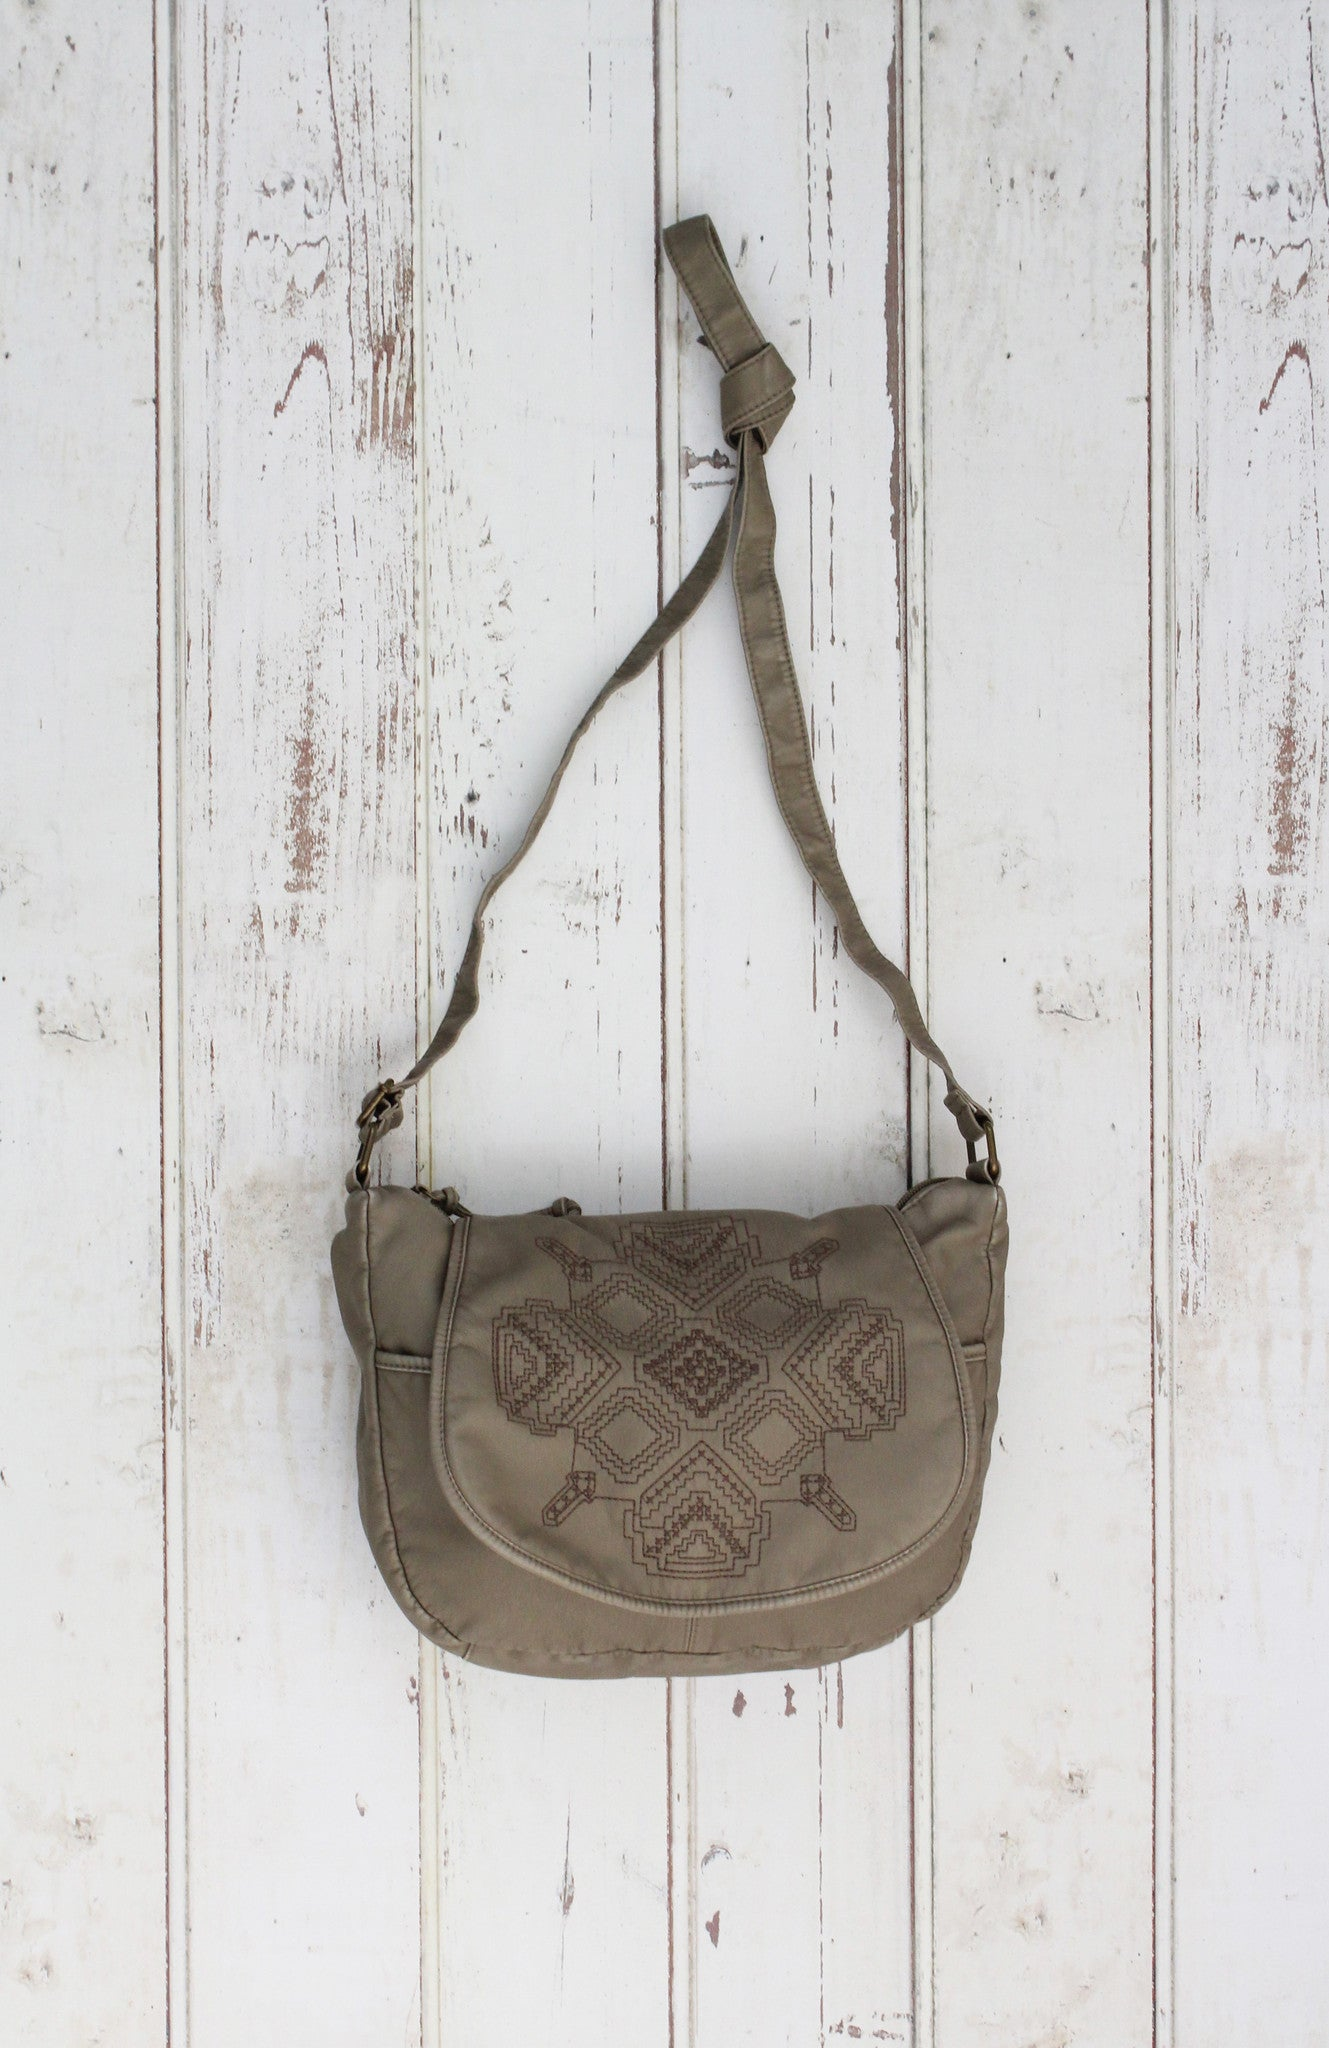 Washed Flap Crossbody with Embroidery in Mushroom